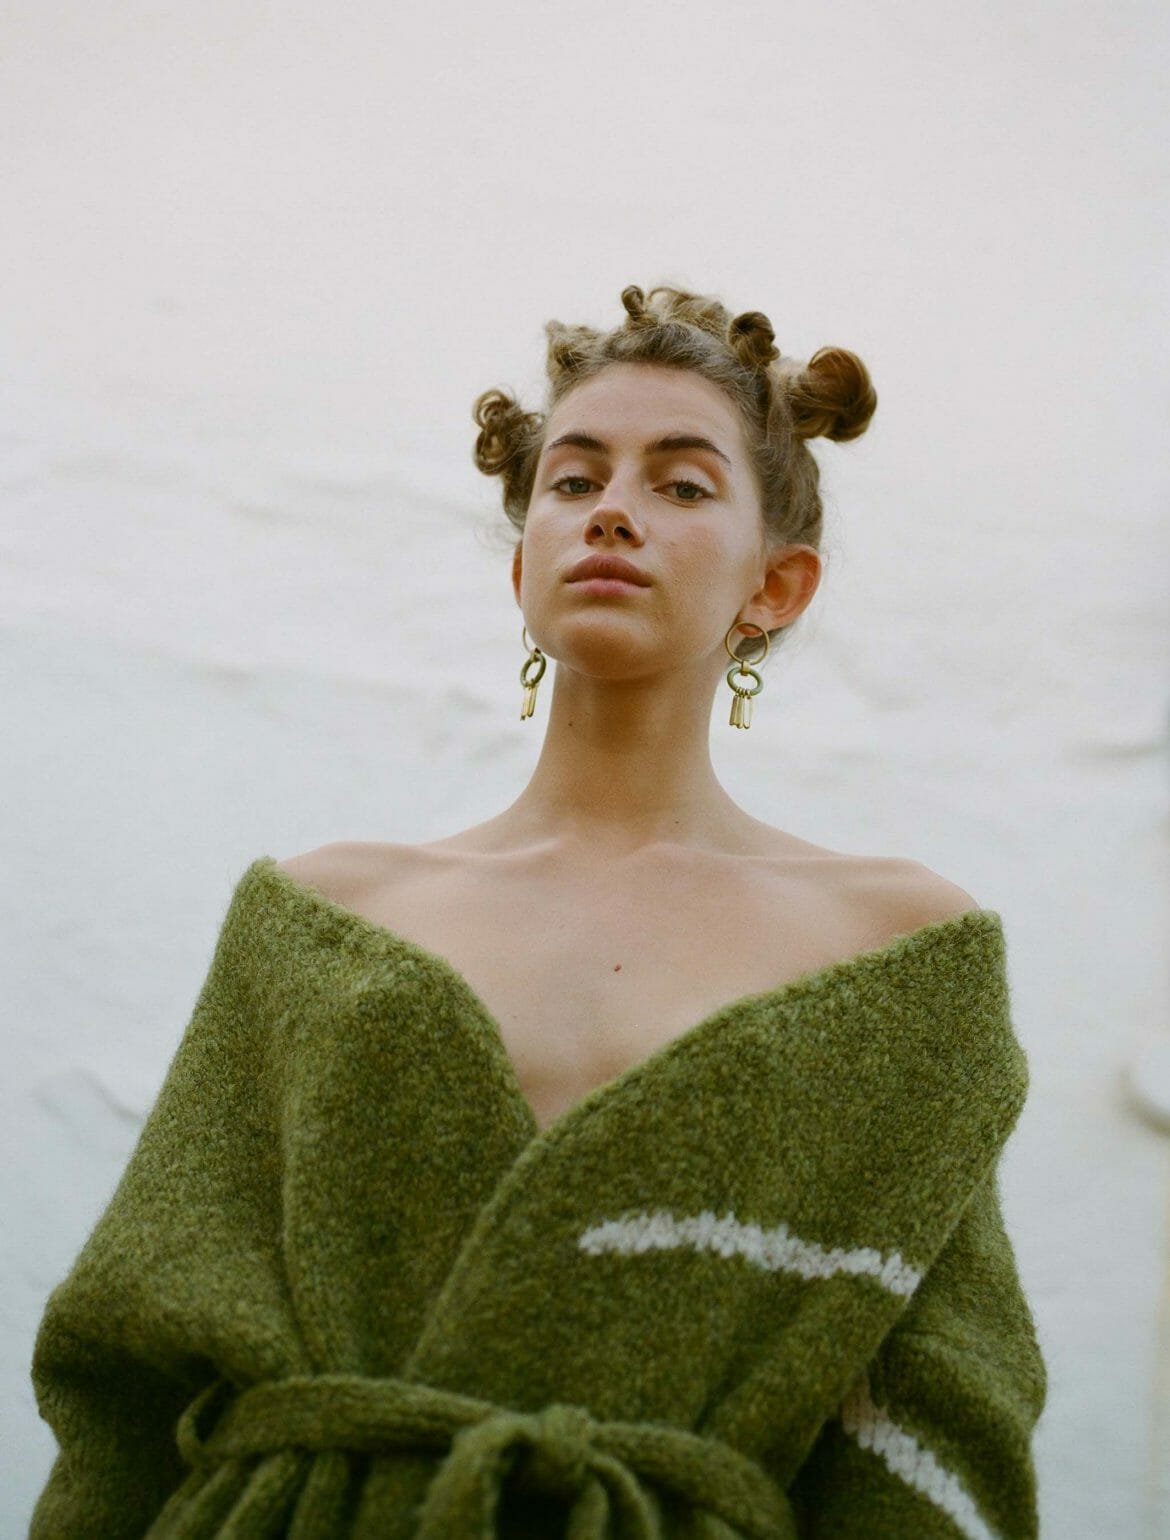 Paloma Wool, un projet créatif made in Barcelone 4